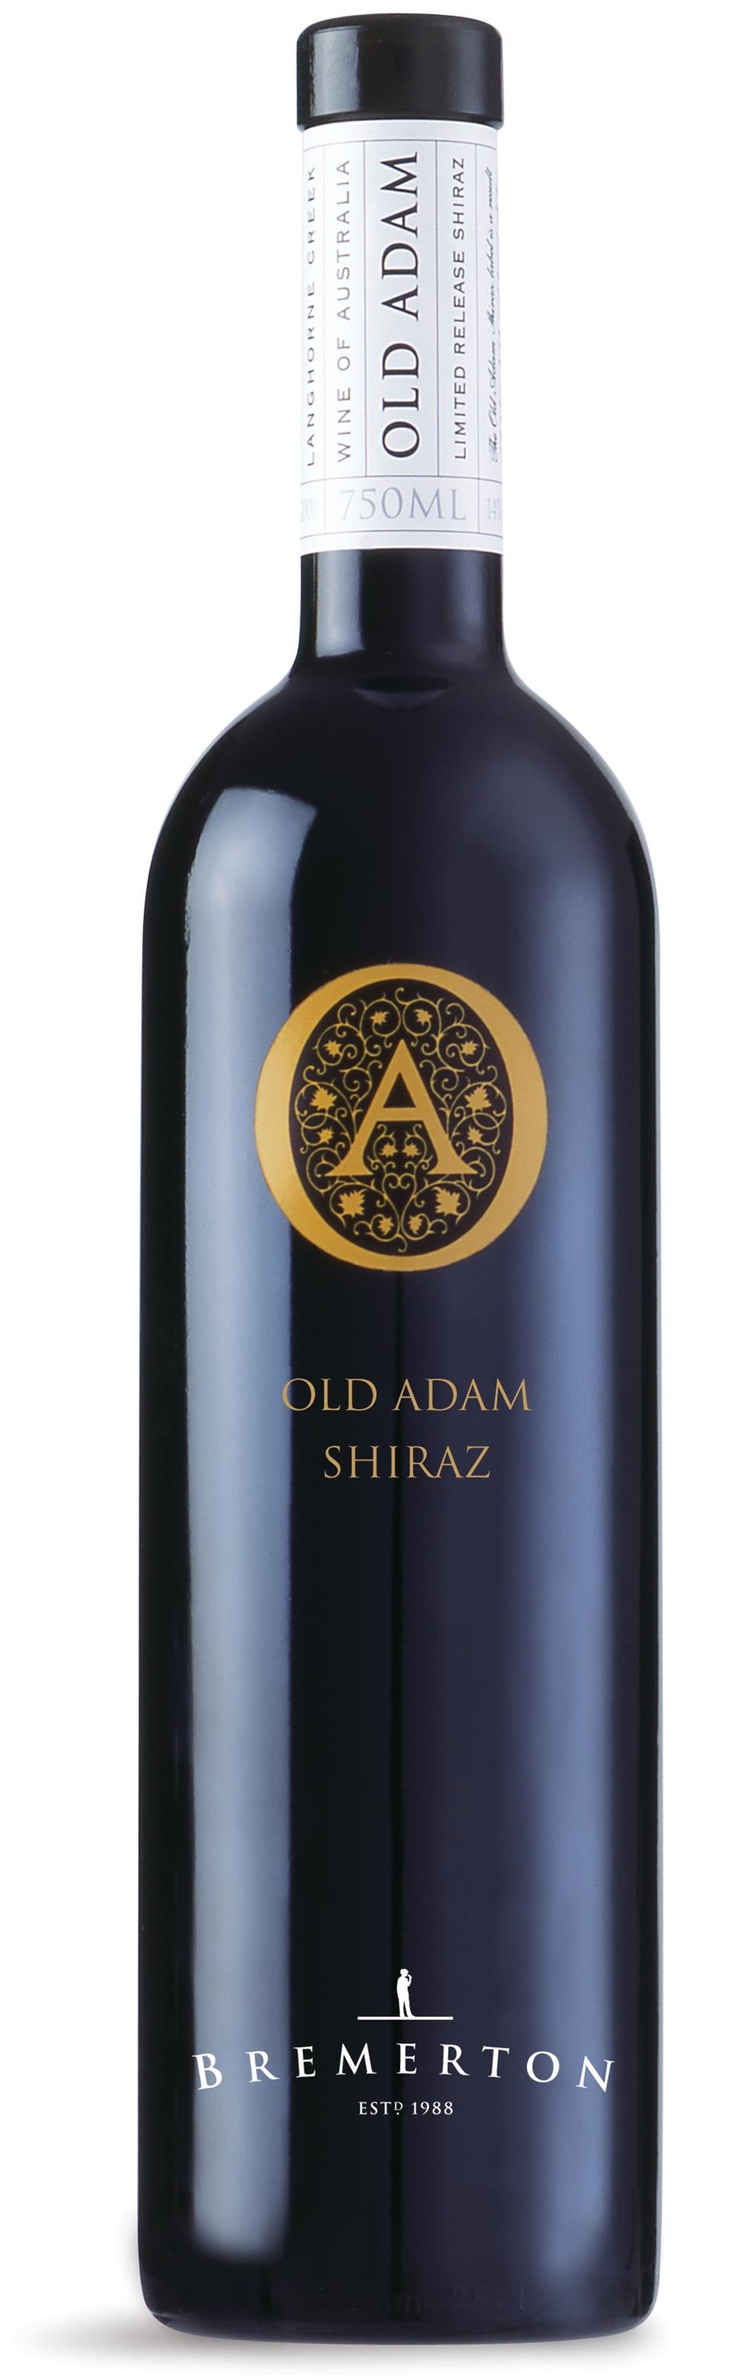 Old Adam Shiraz - 94 Points From James Halliday